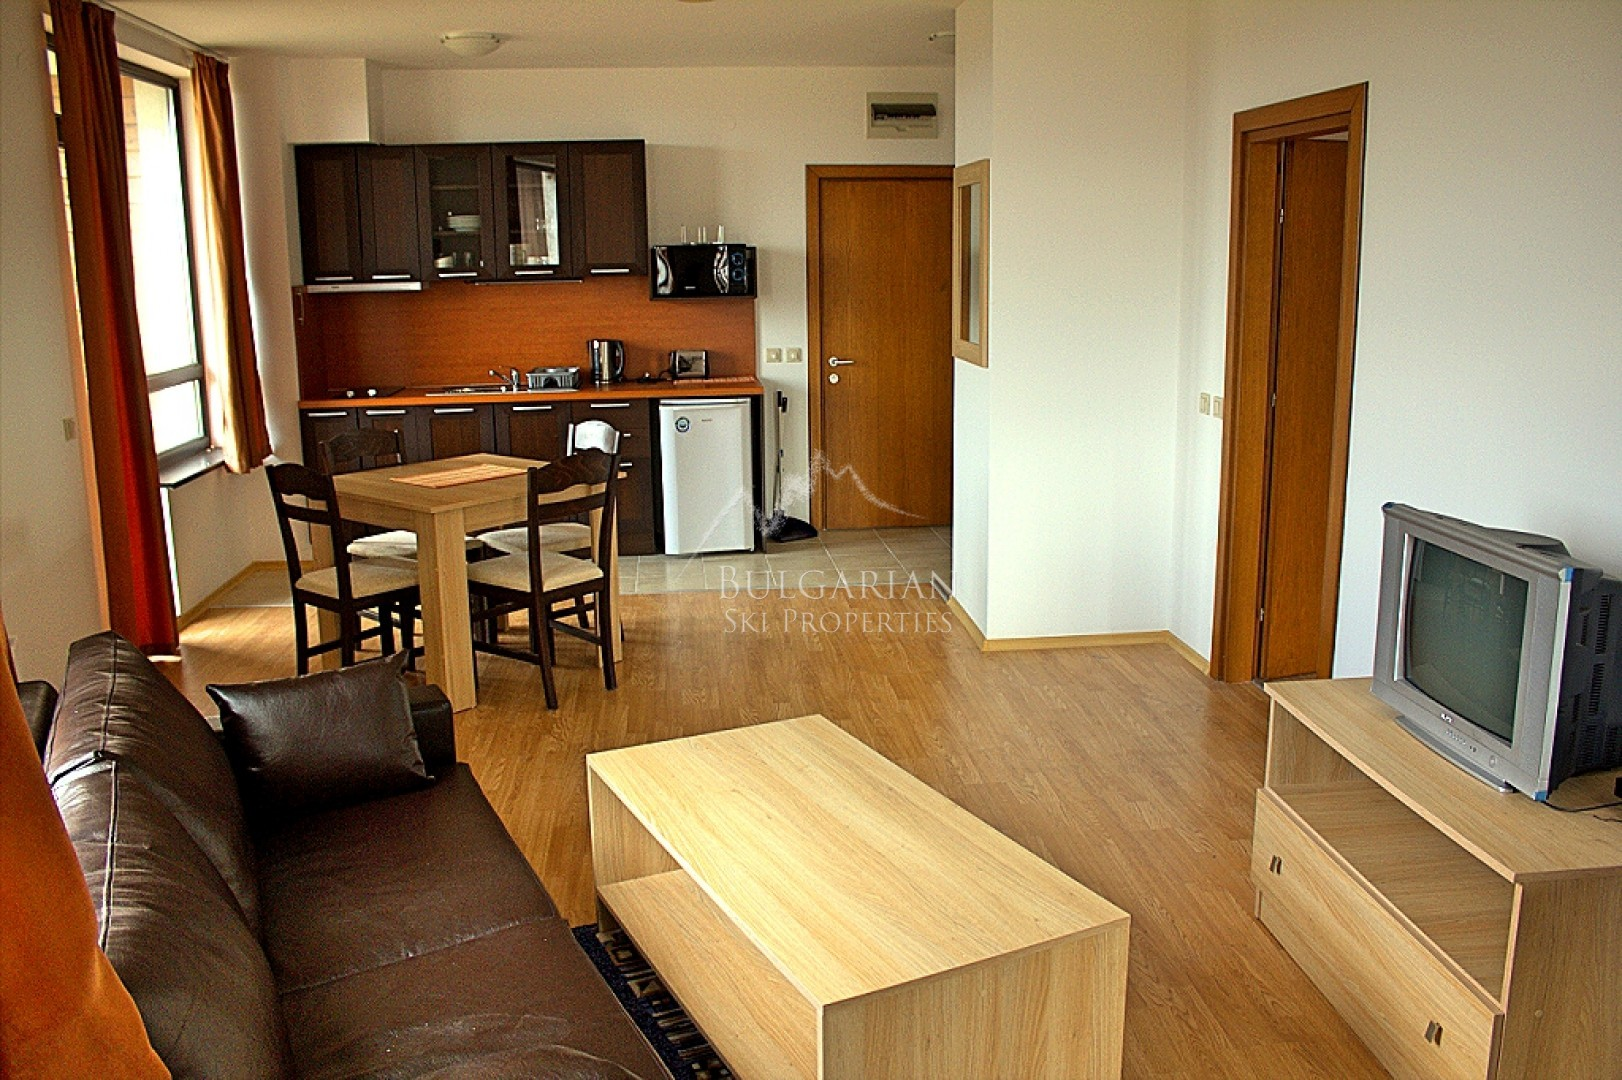 Aspen Valley: furnished one-bedroom apartment for sale on bargain price